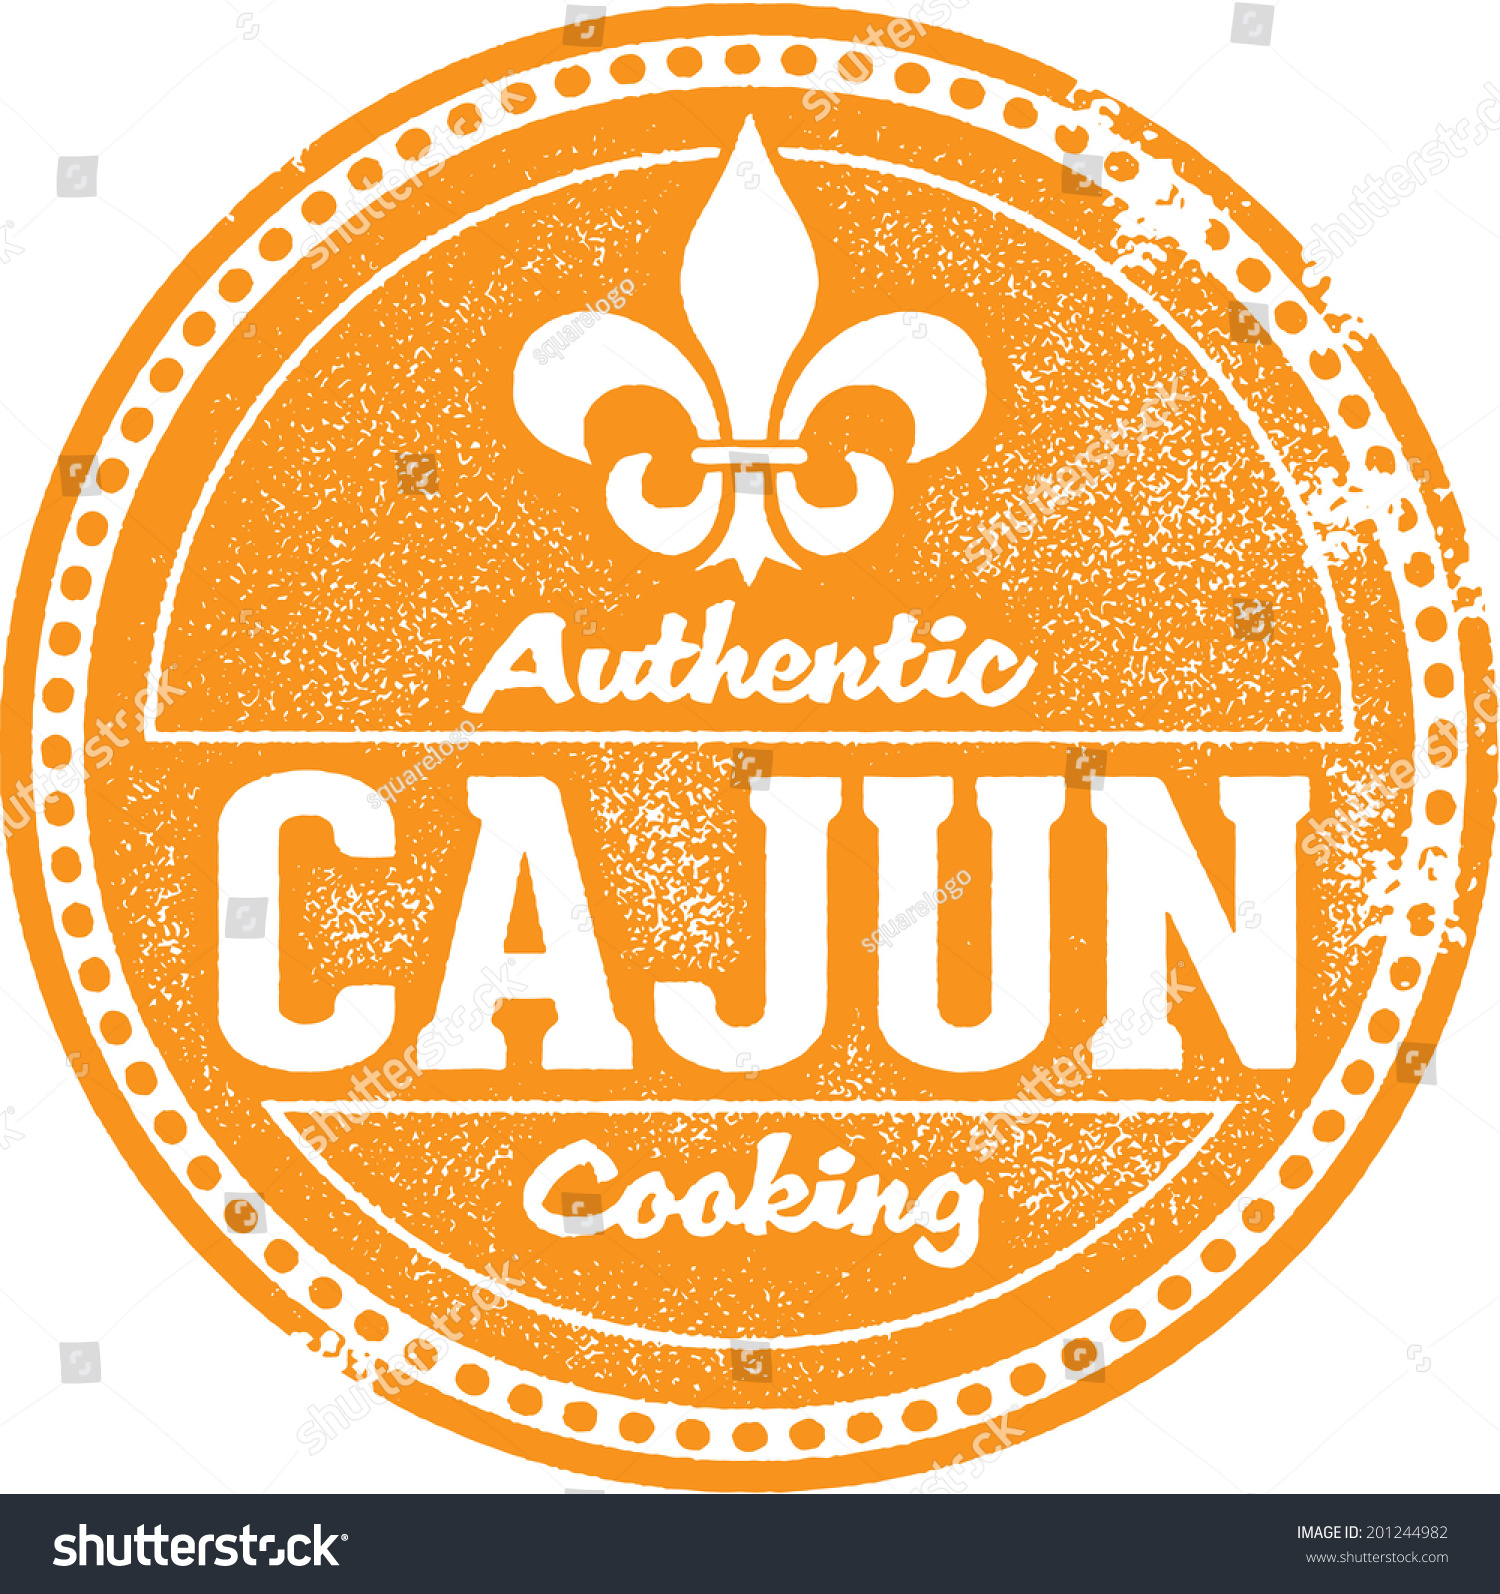 Authentic cajun cooking stamp stock vector 201244982 for Authentic cajun cuisine